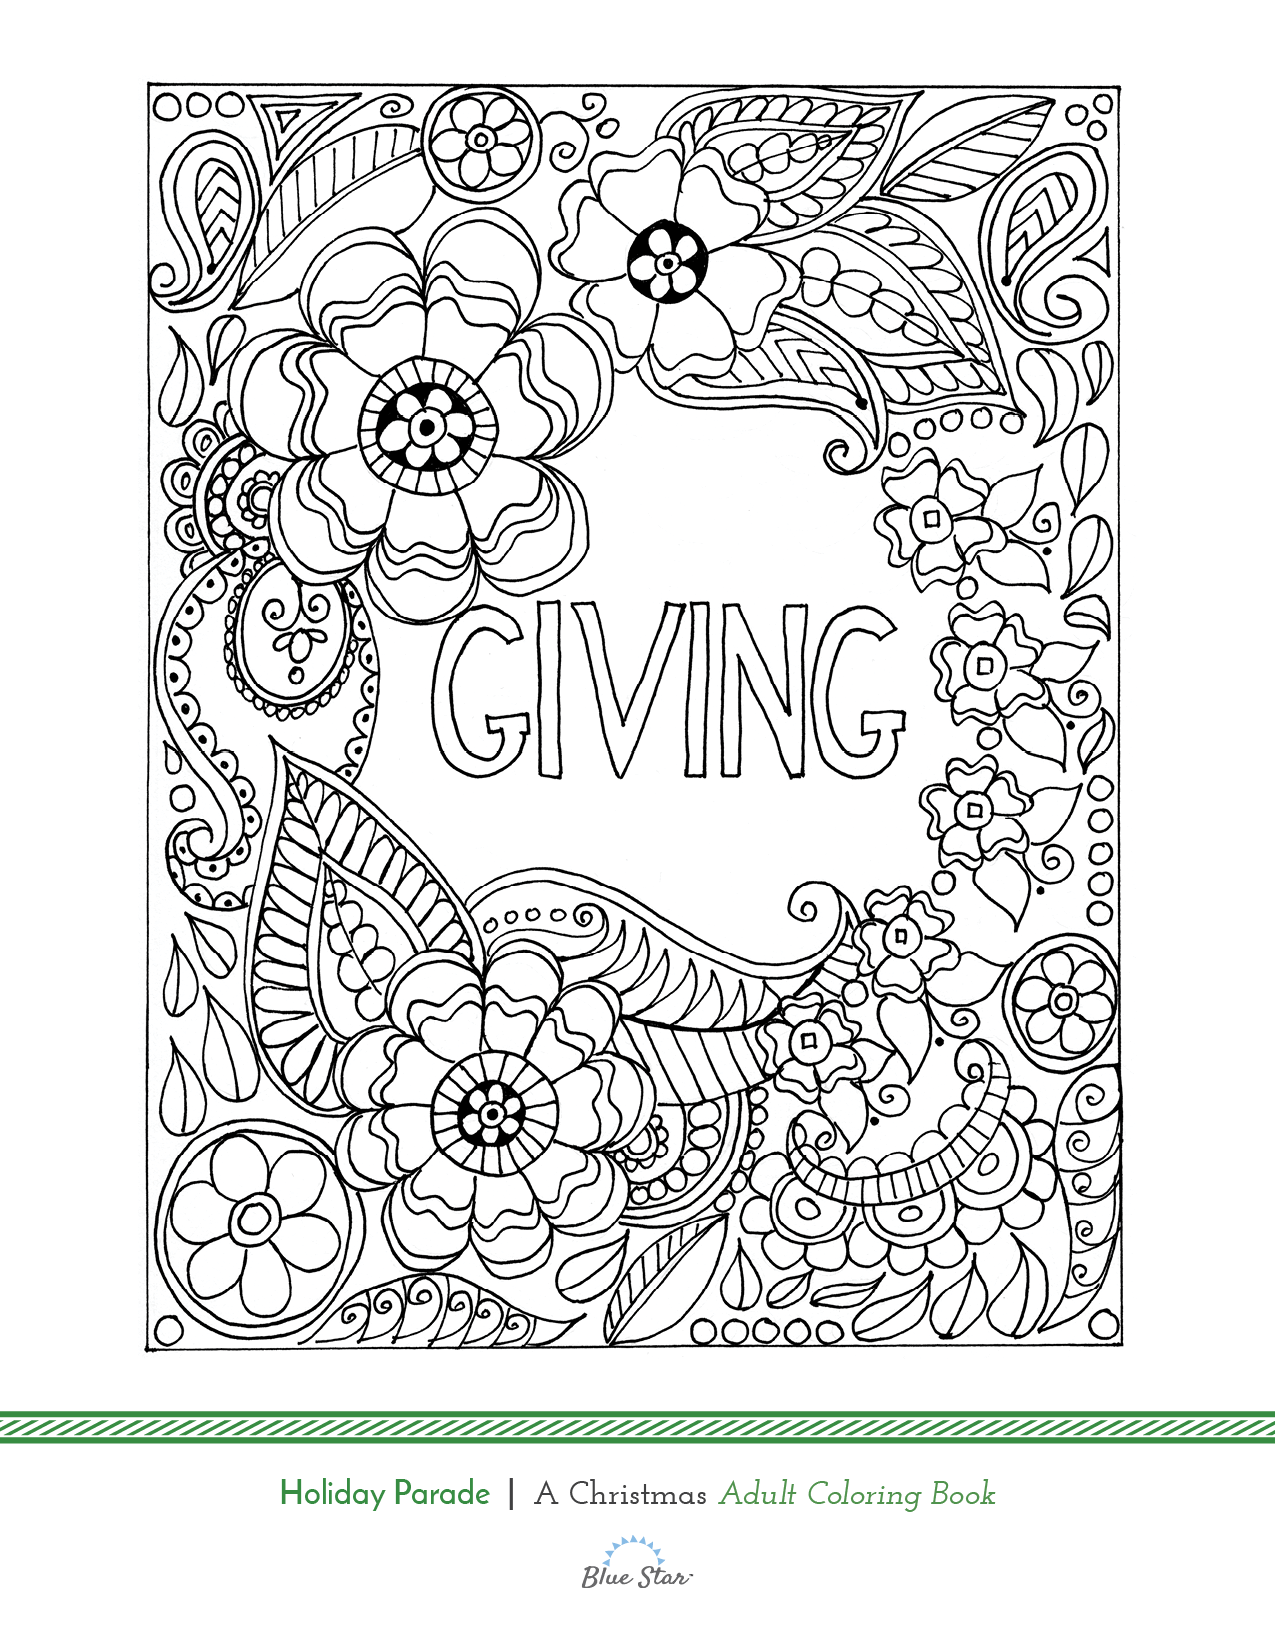 Another free adult coloring book page from our new release